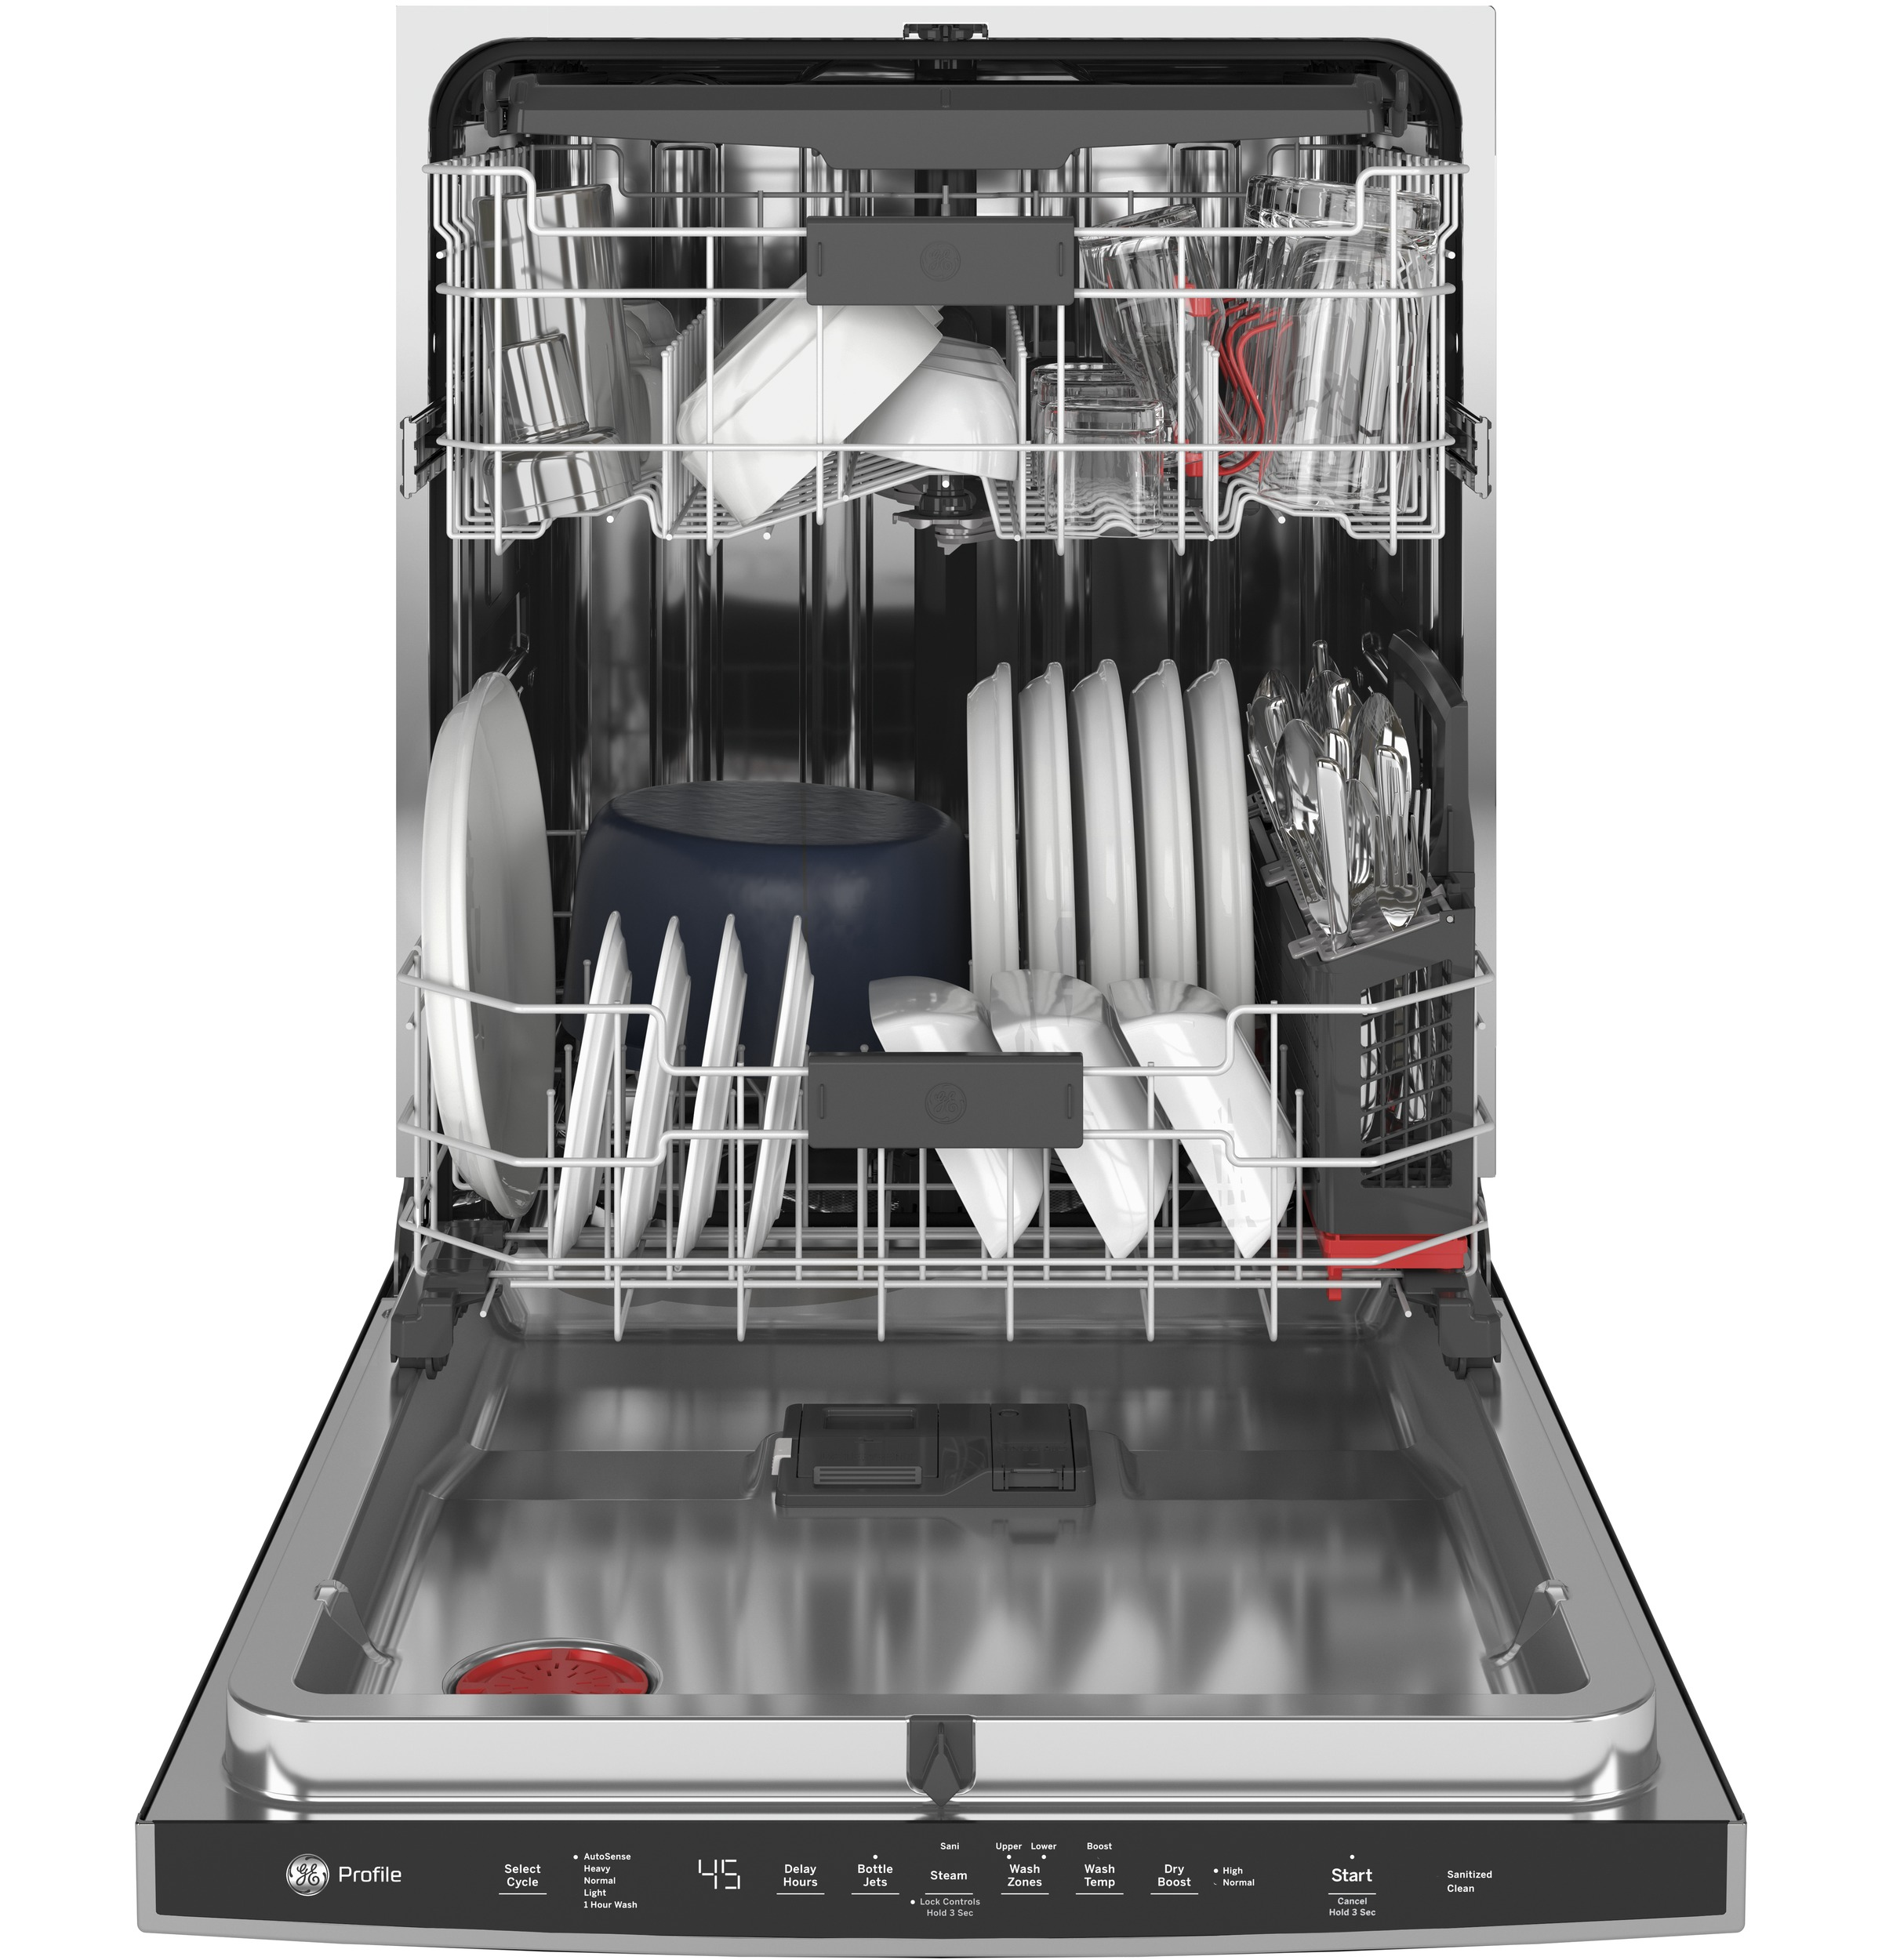 Model: PDP715SYNFS | GE Profile GE Profile™ Stainless Steel Interior Dishwasher with Hidden Controls